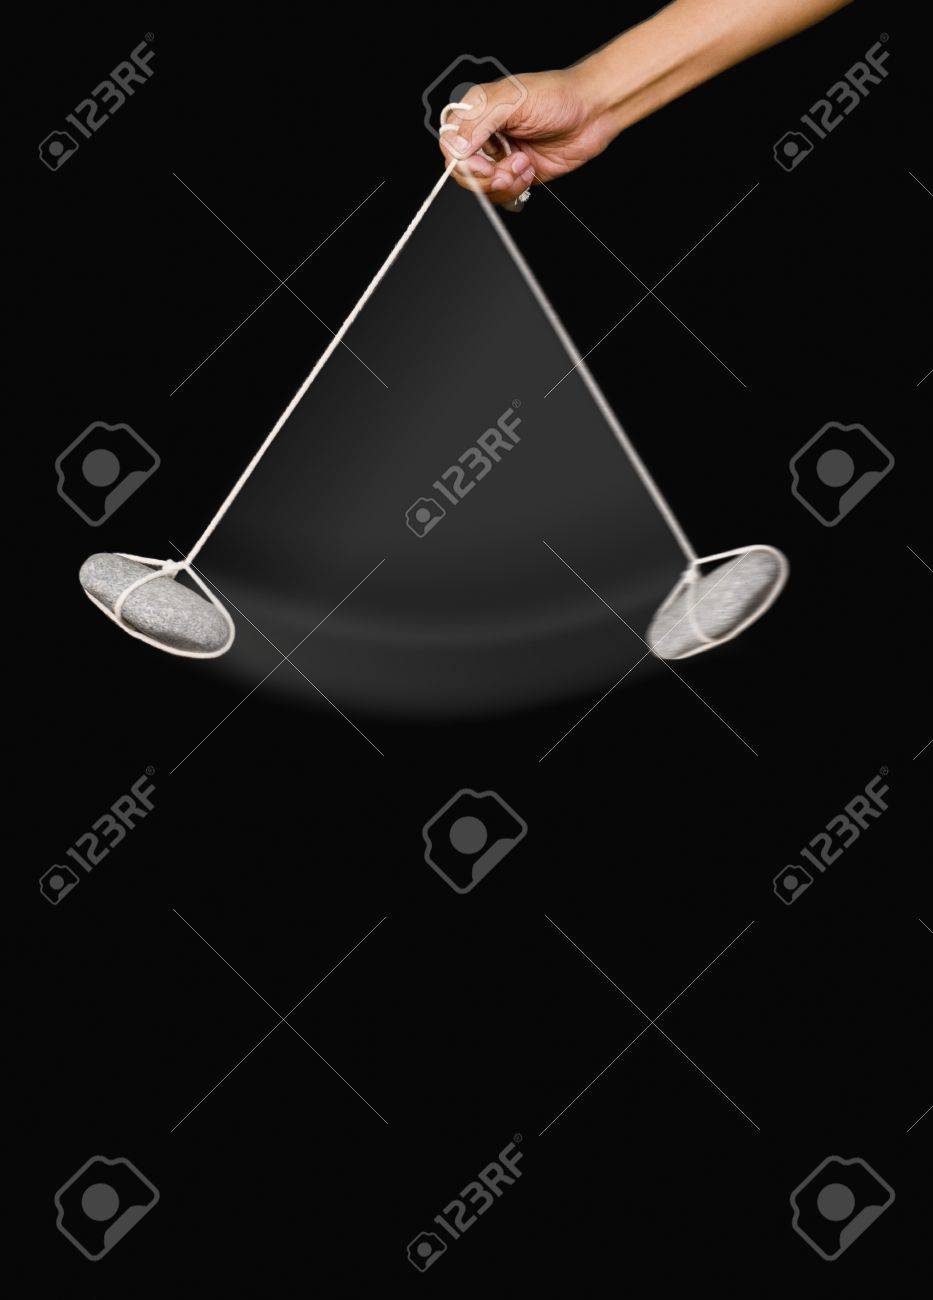 Close-up of a person's hand swinging a stone pendulum Stock Photo - 10241034